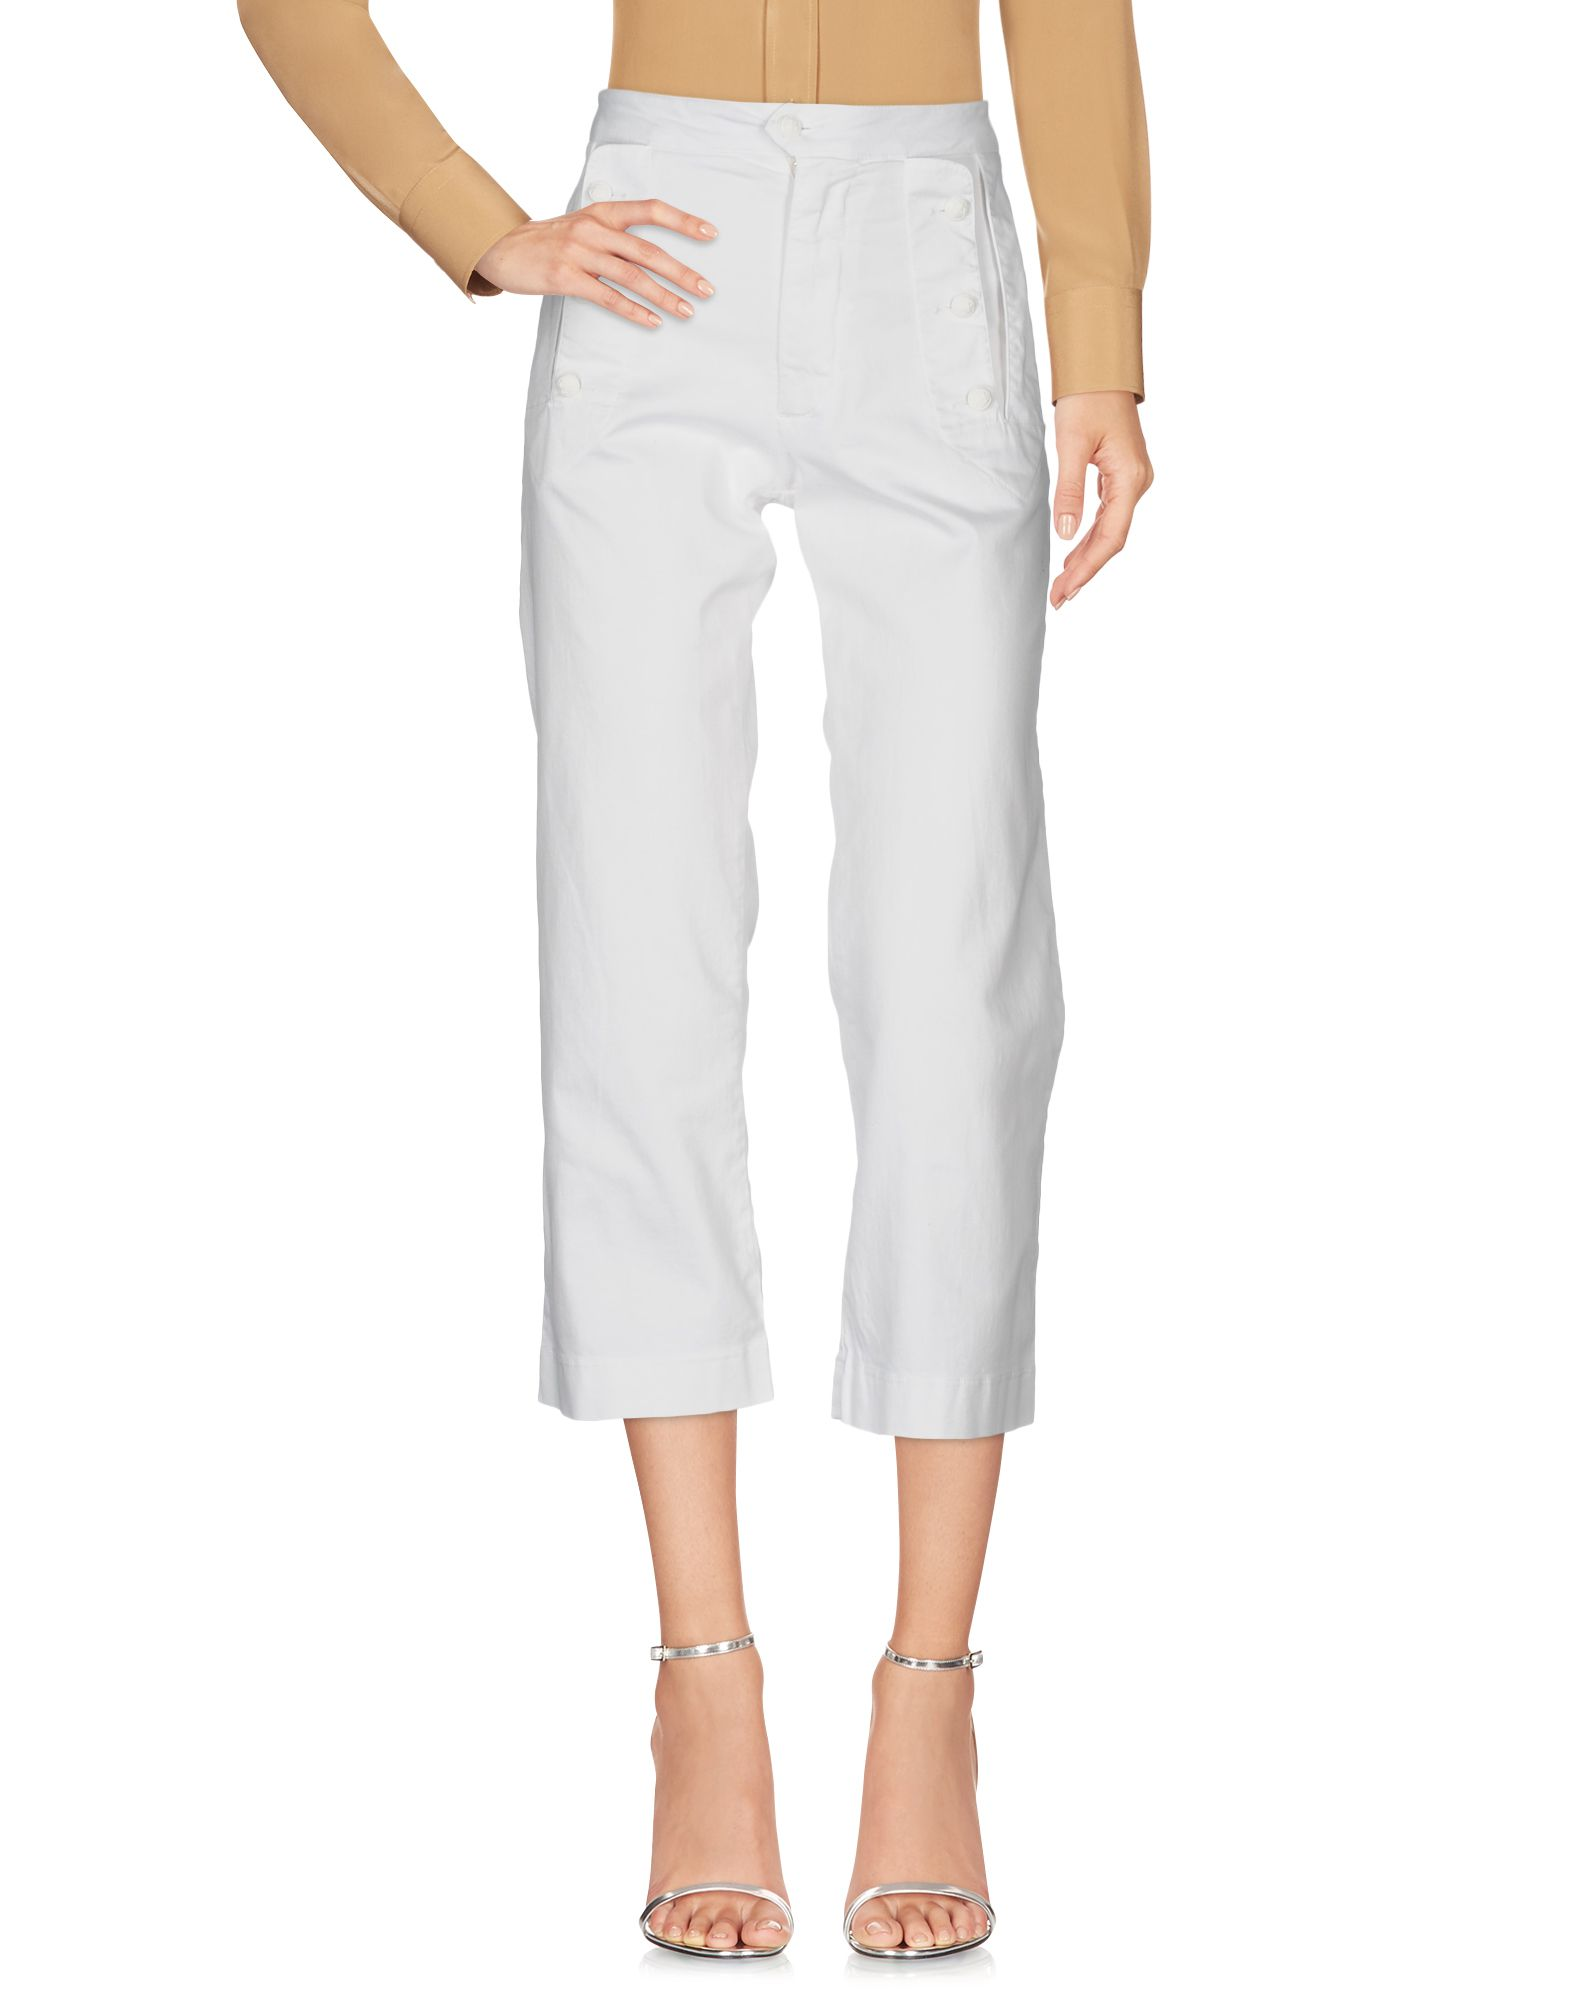 Pantalone Dritto ..,Merci donna - 13090602IS 13090602IS 13090602IS 7d5